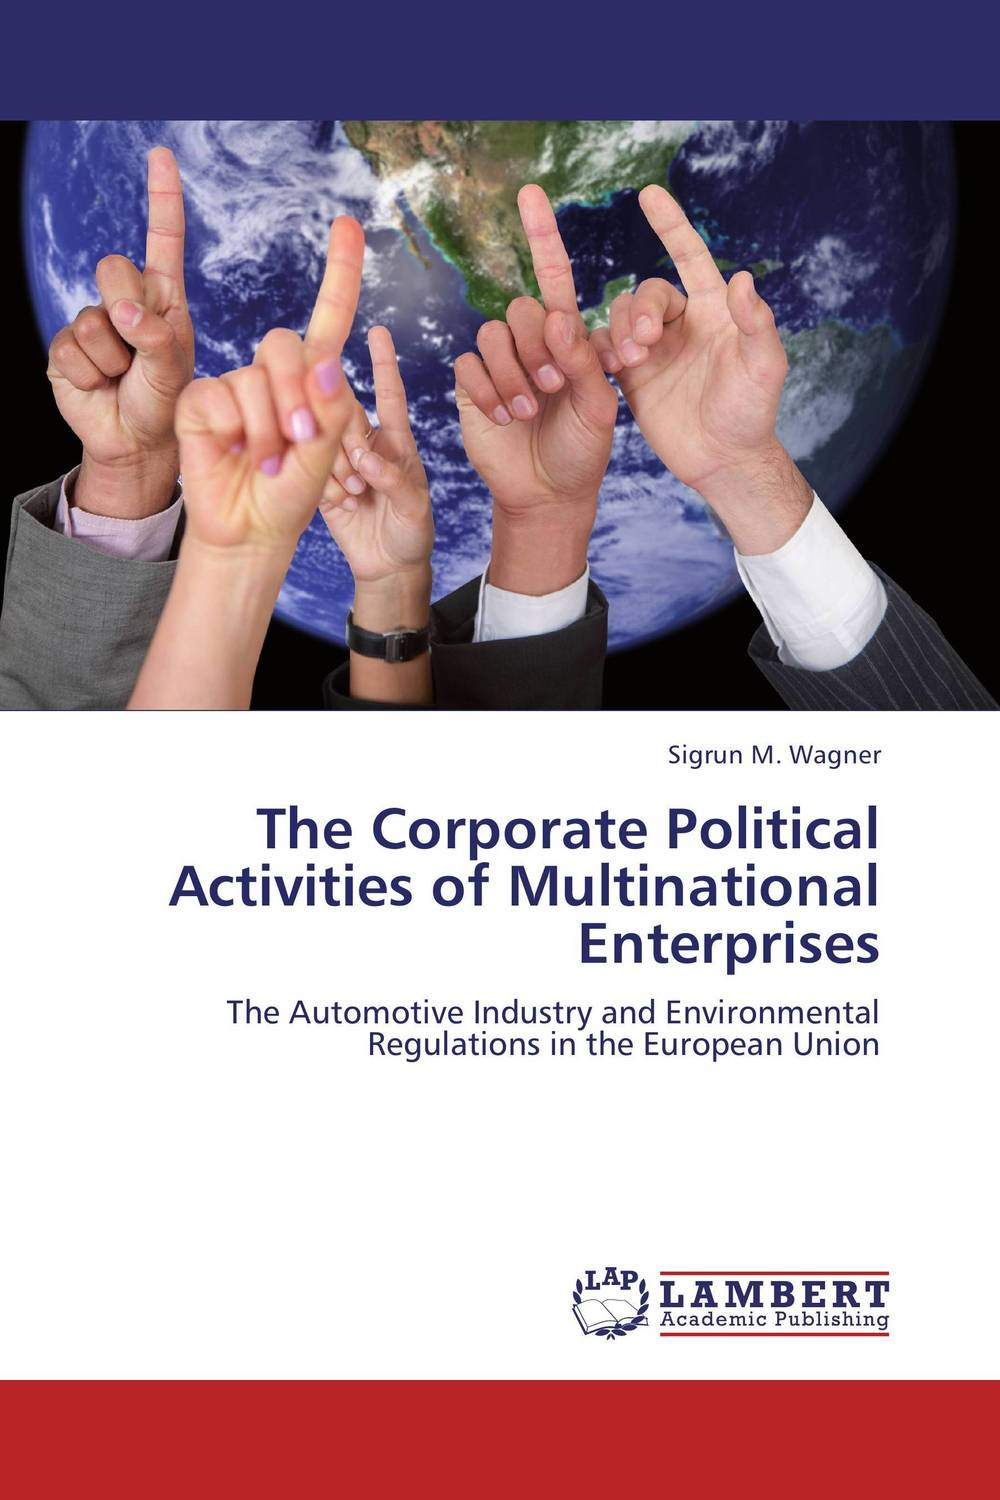 The Corporate Political Activities of Multinational Enterprises dysfunctions in accounting and the role of corporate lobbying